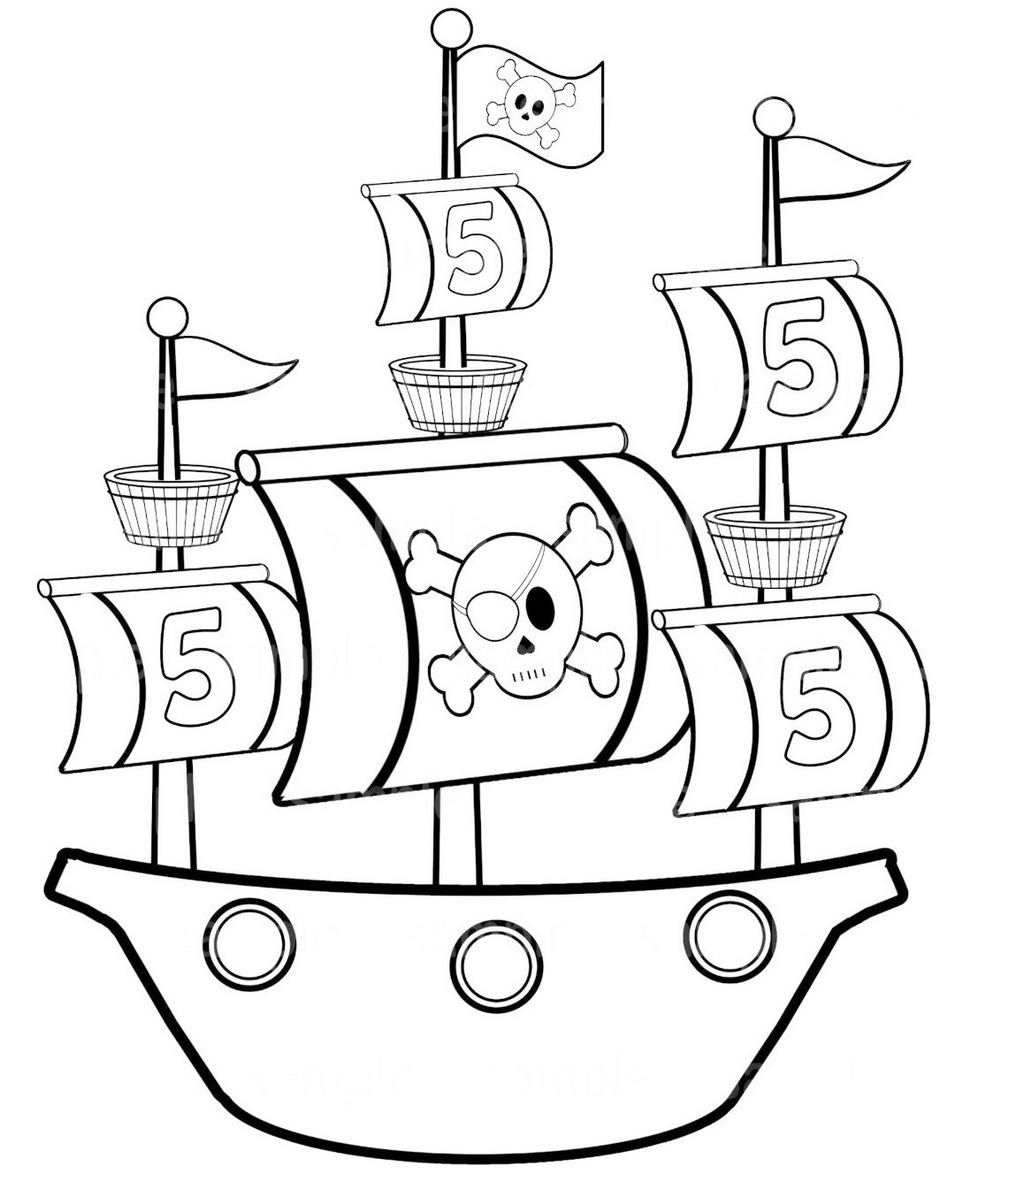 pirate coloring pages for preschool pirate coloring pages for preschool unique Ð Ñ ÐÑ ÐÐÐÑ coloring preschool pages for pirate